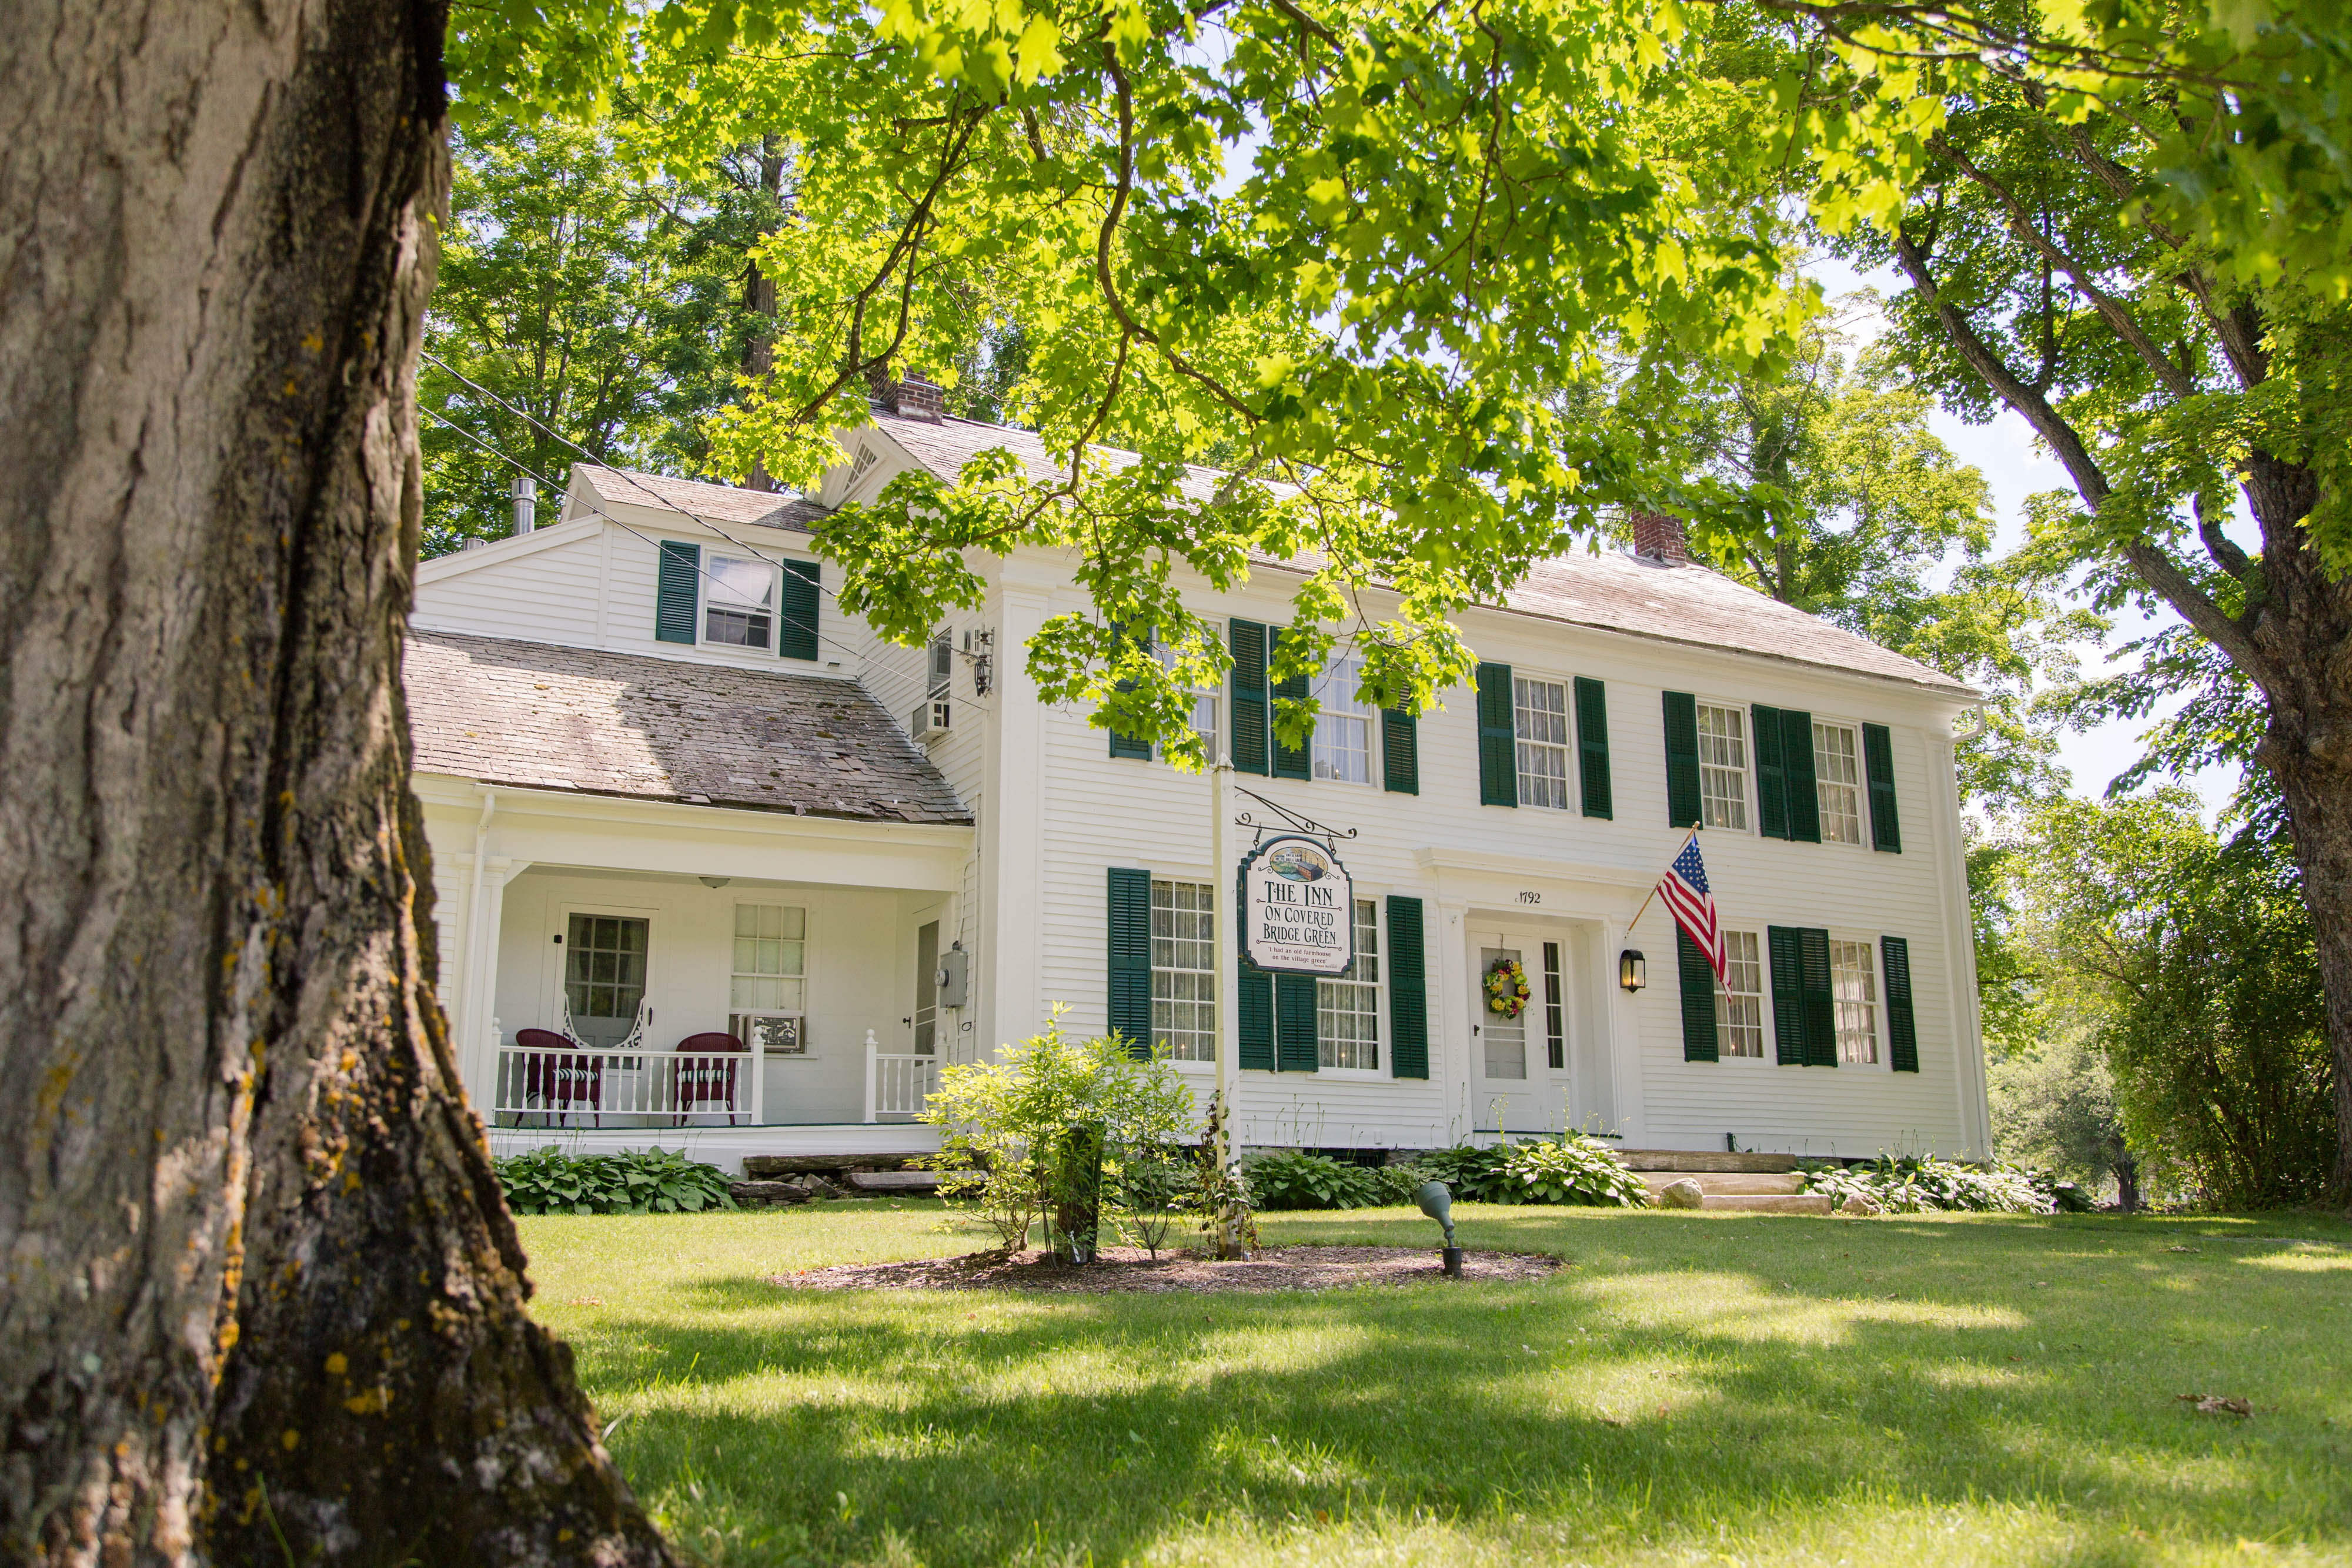 Bed And Breakfast | Norman Rockwell | Inn on Covered Bridge Green